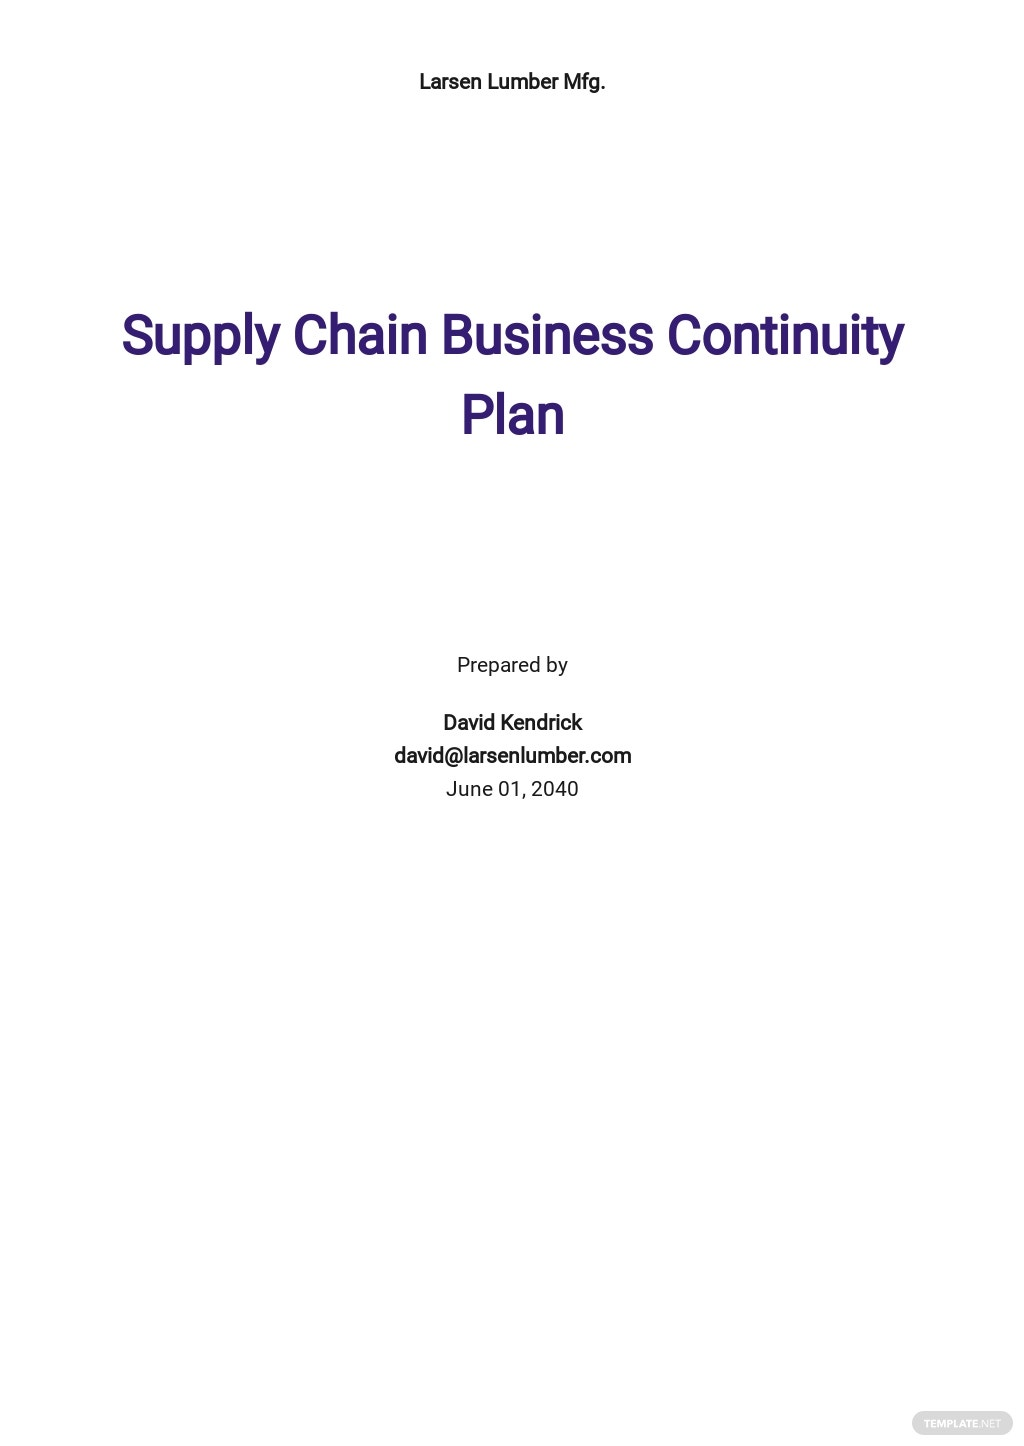 Supply Chain Business Continuity Plan Template.jpe